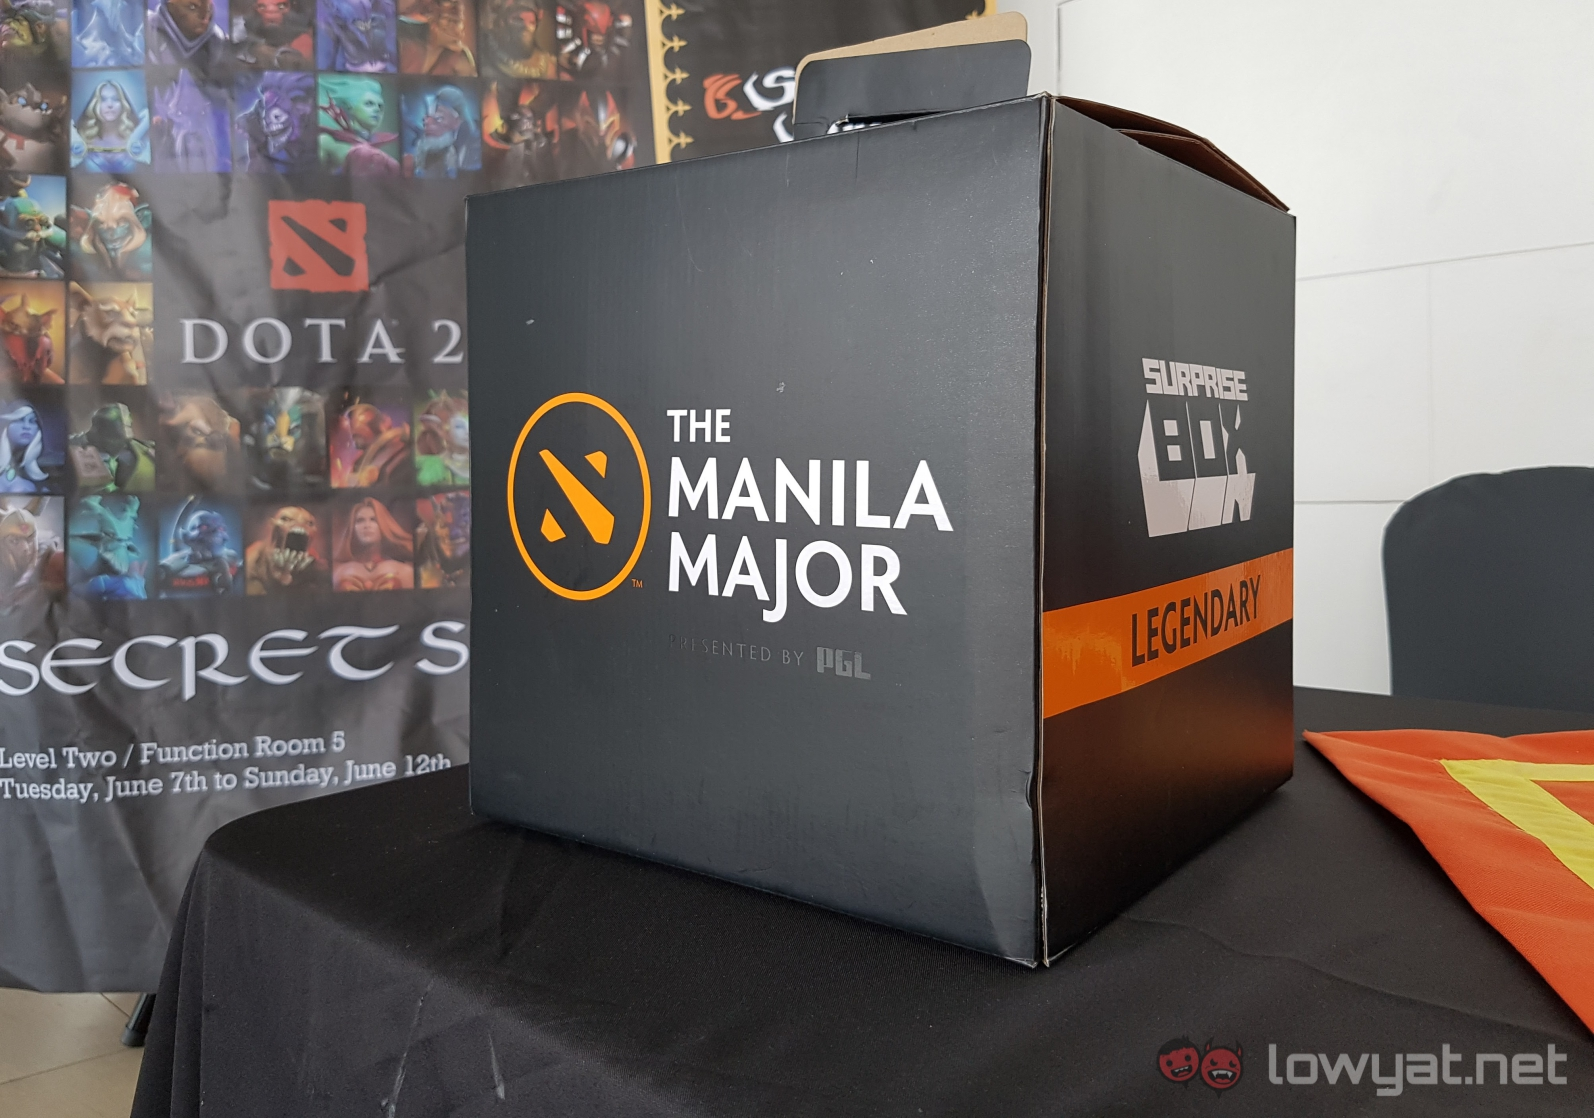 Legendary-Box-Manila-Major-Dota-2